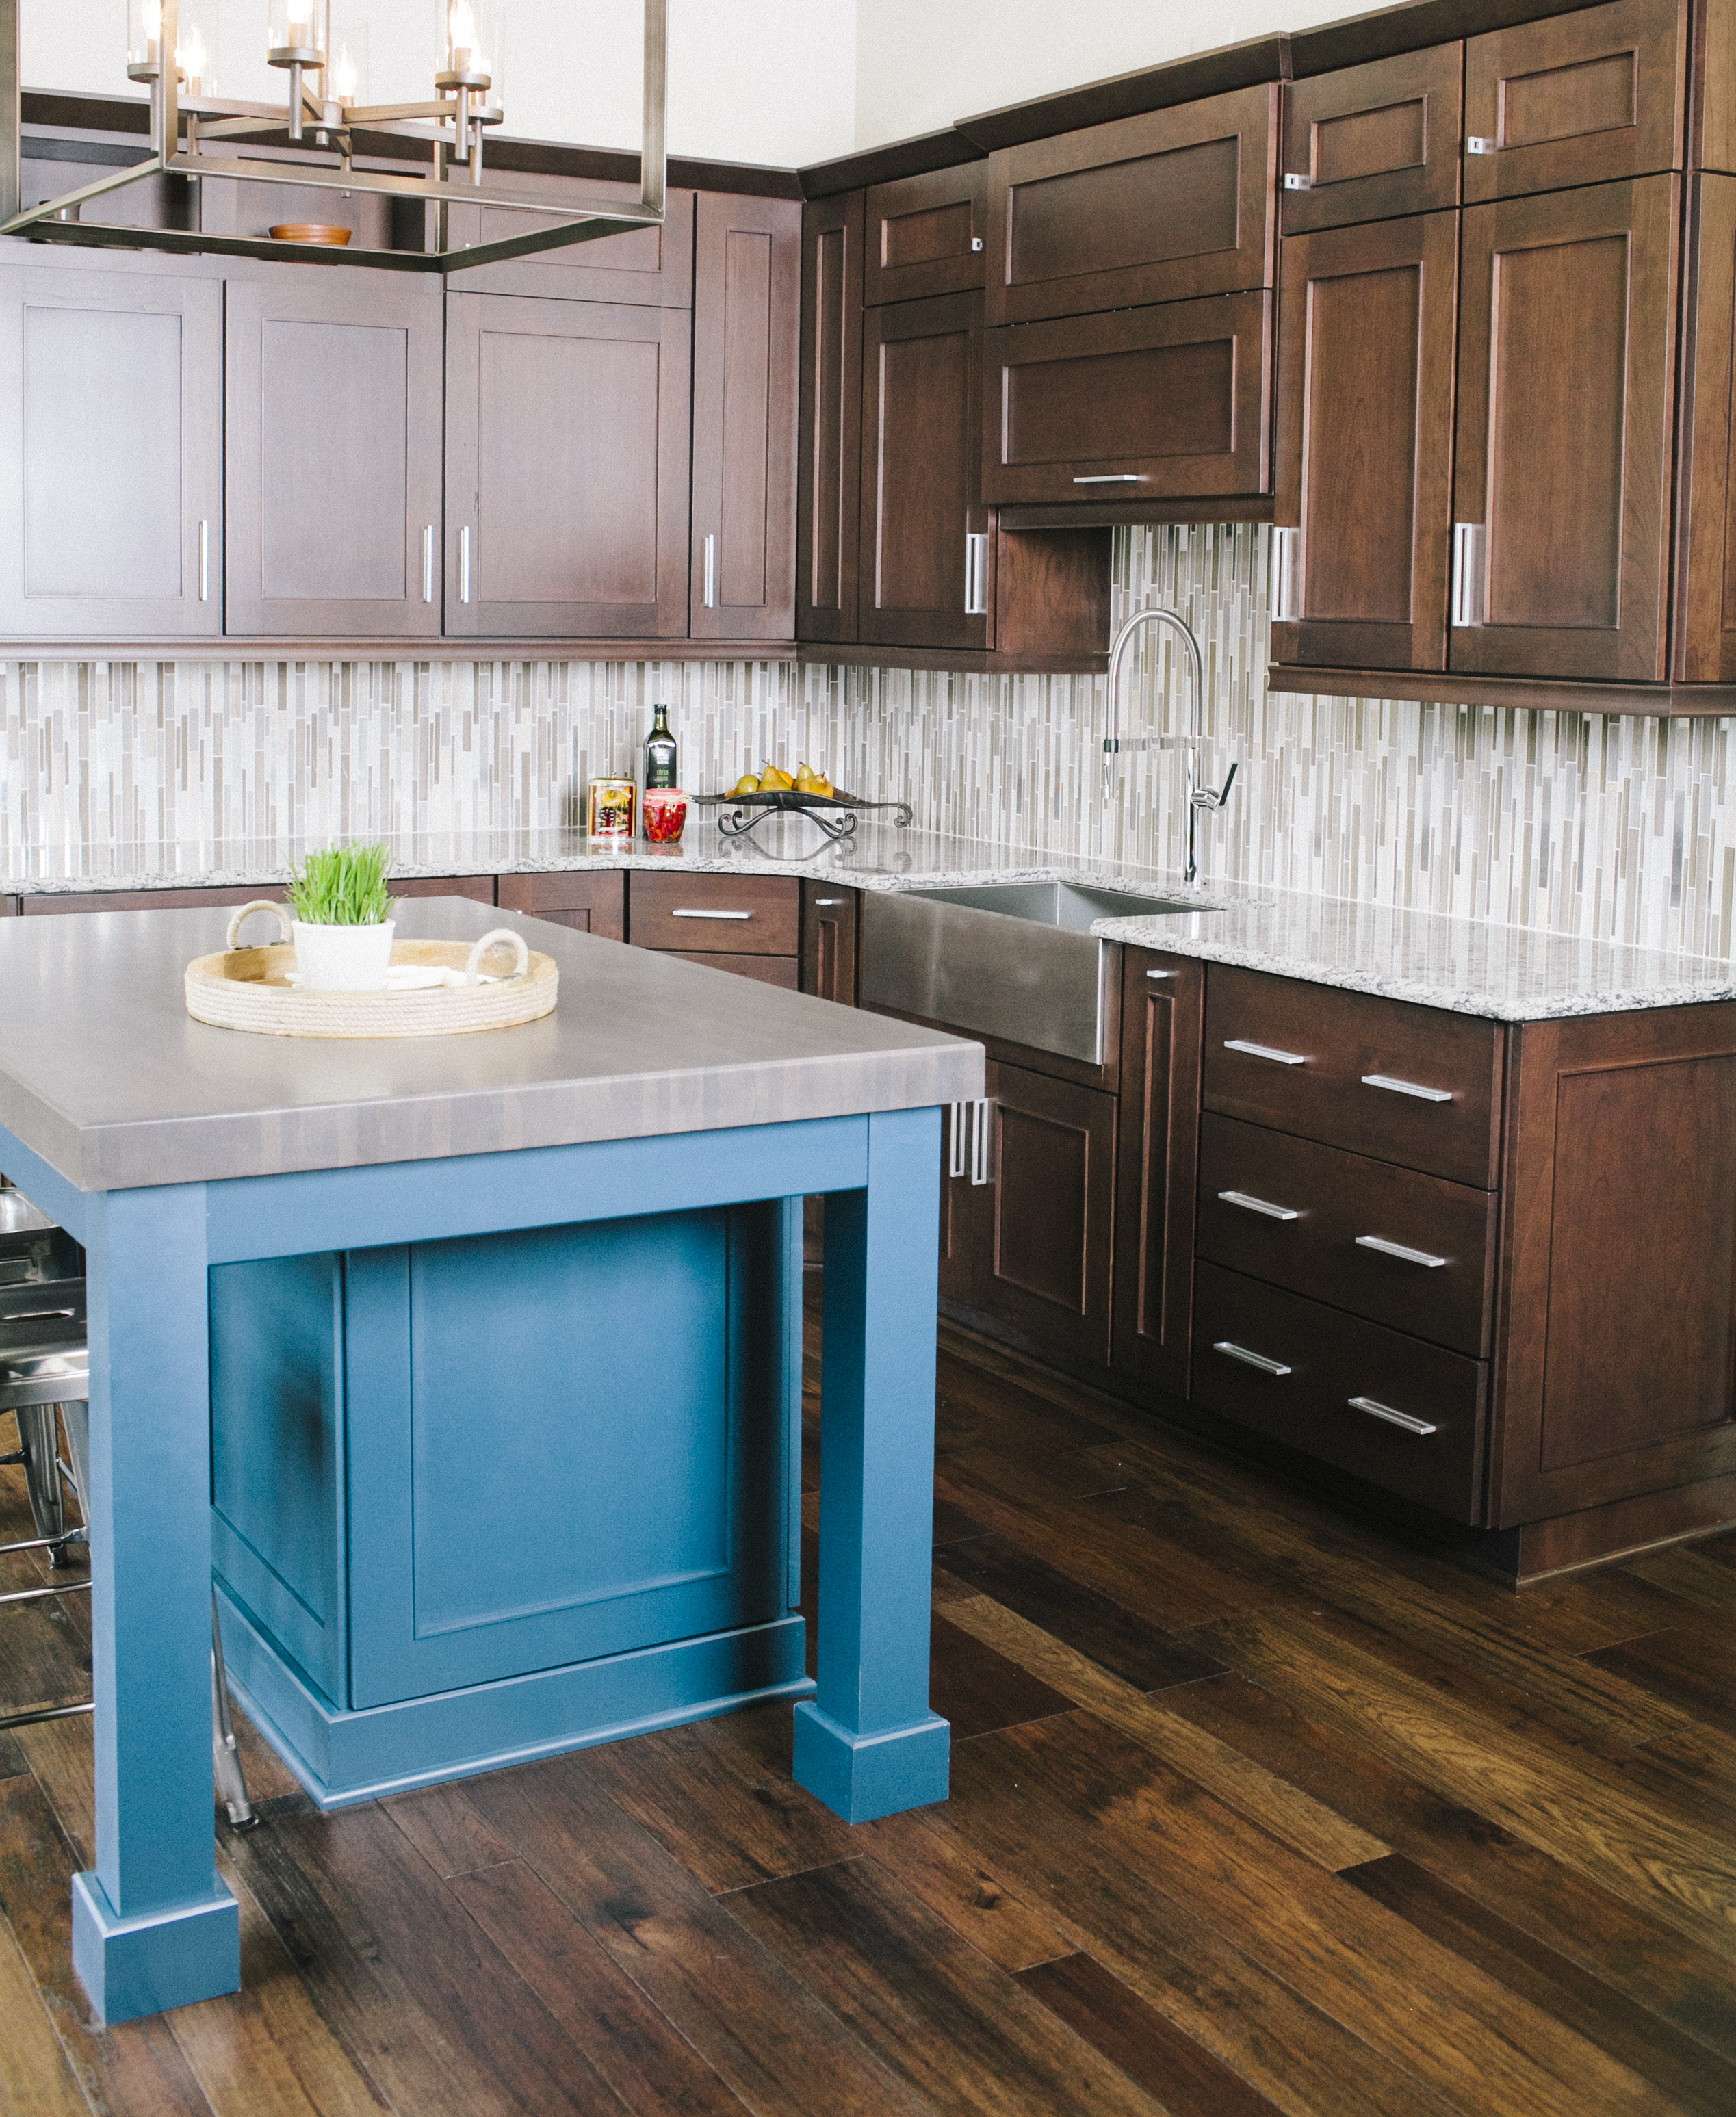 Kitchen Cabinets Wilmington Nc: Remodeling Can Solve Kitchen Or Bath Frustrations By